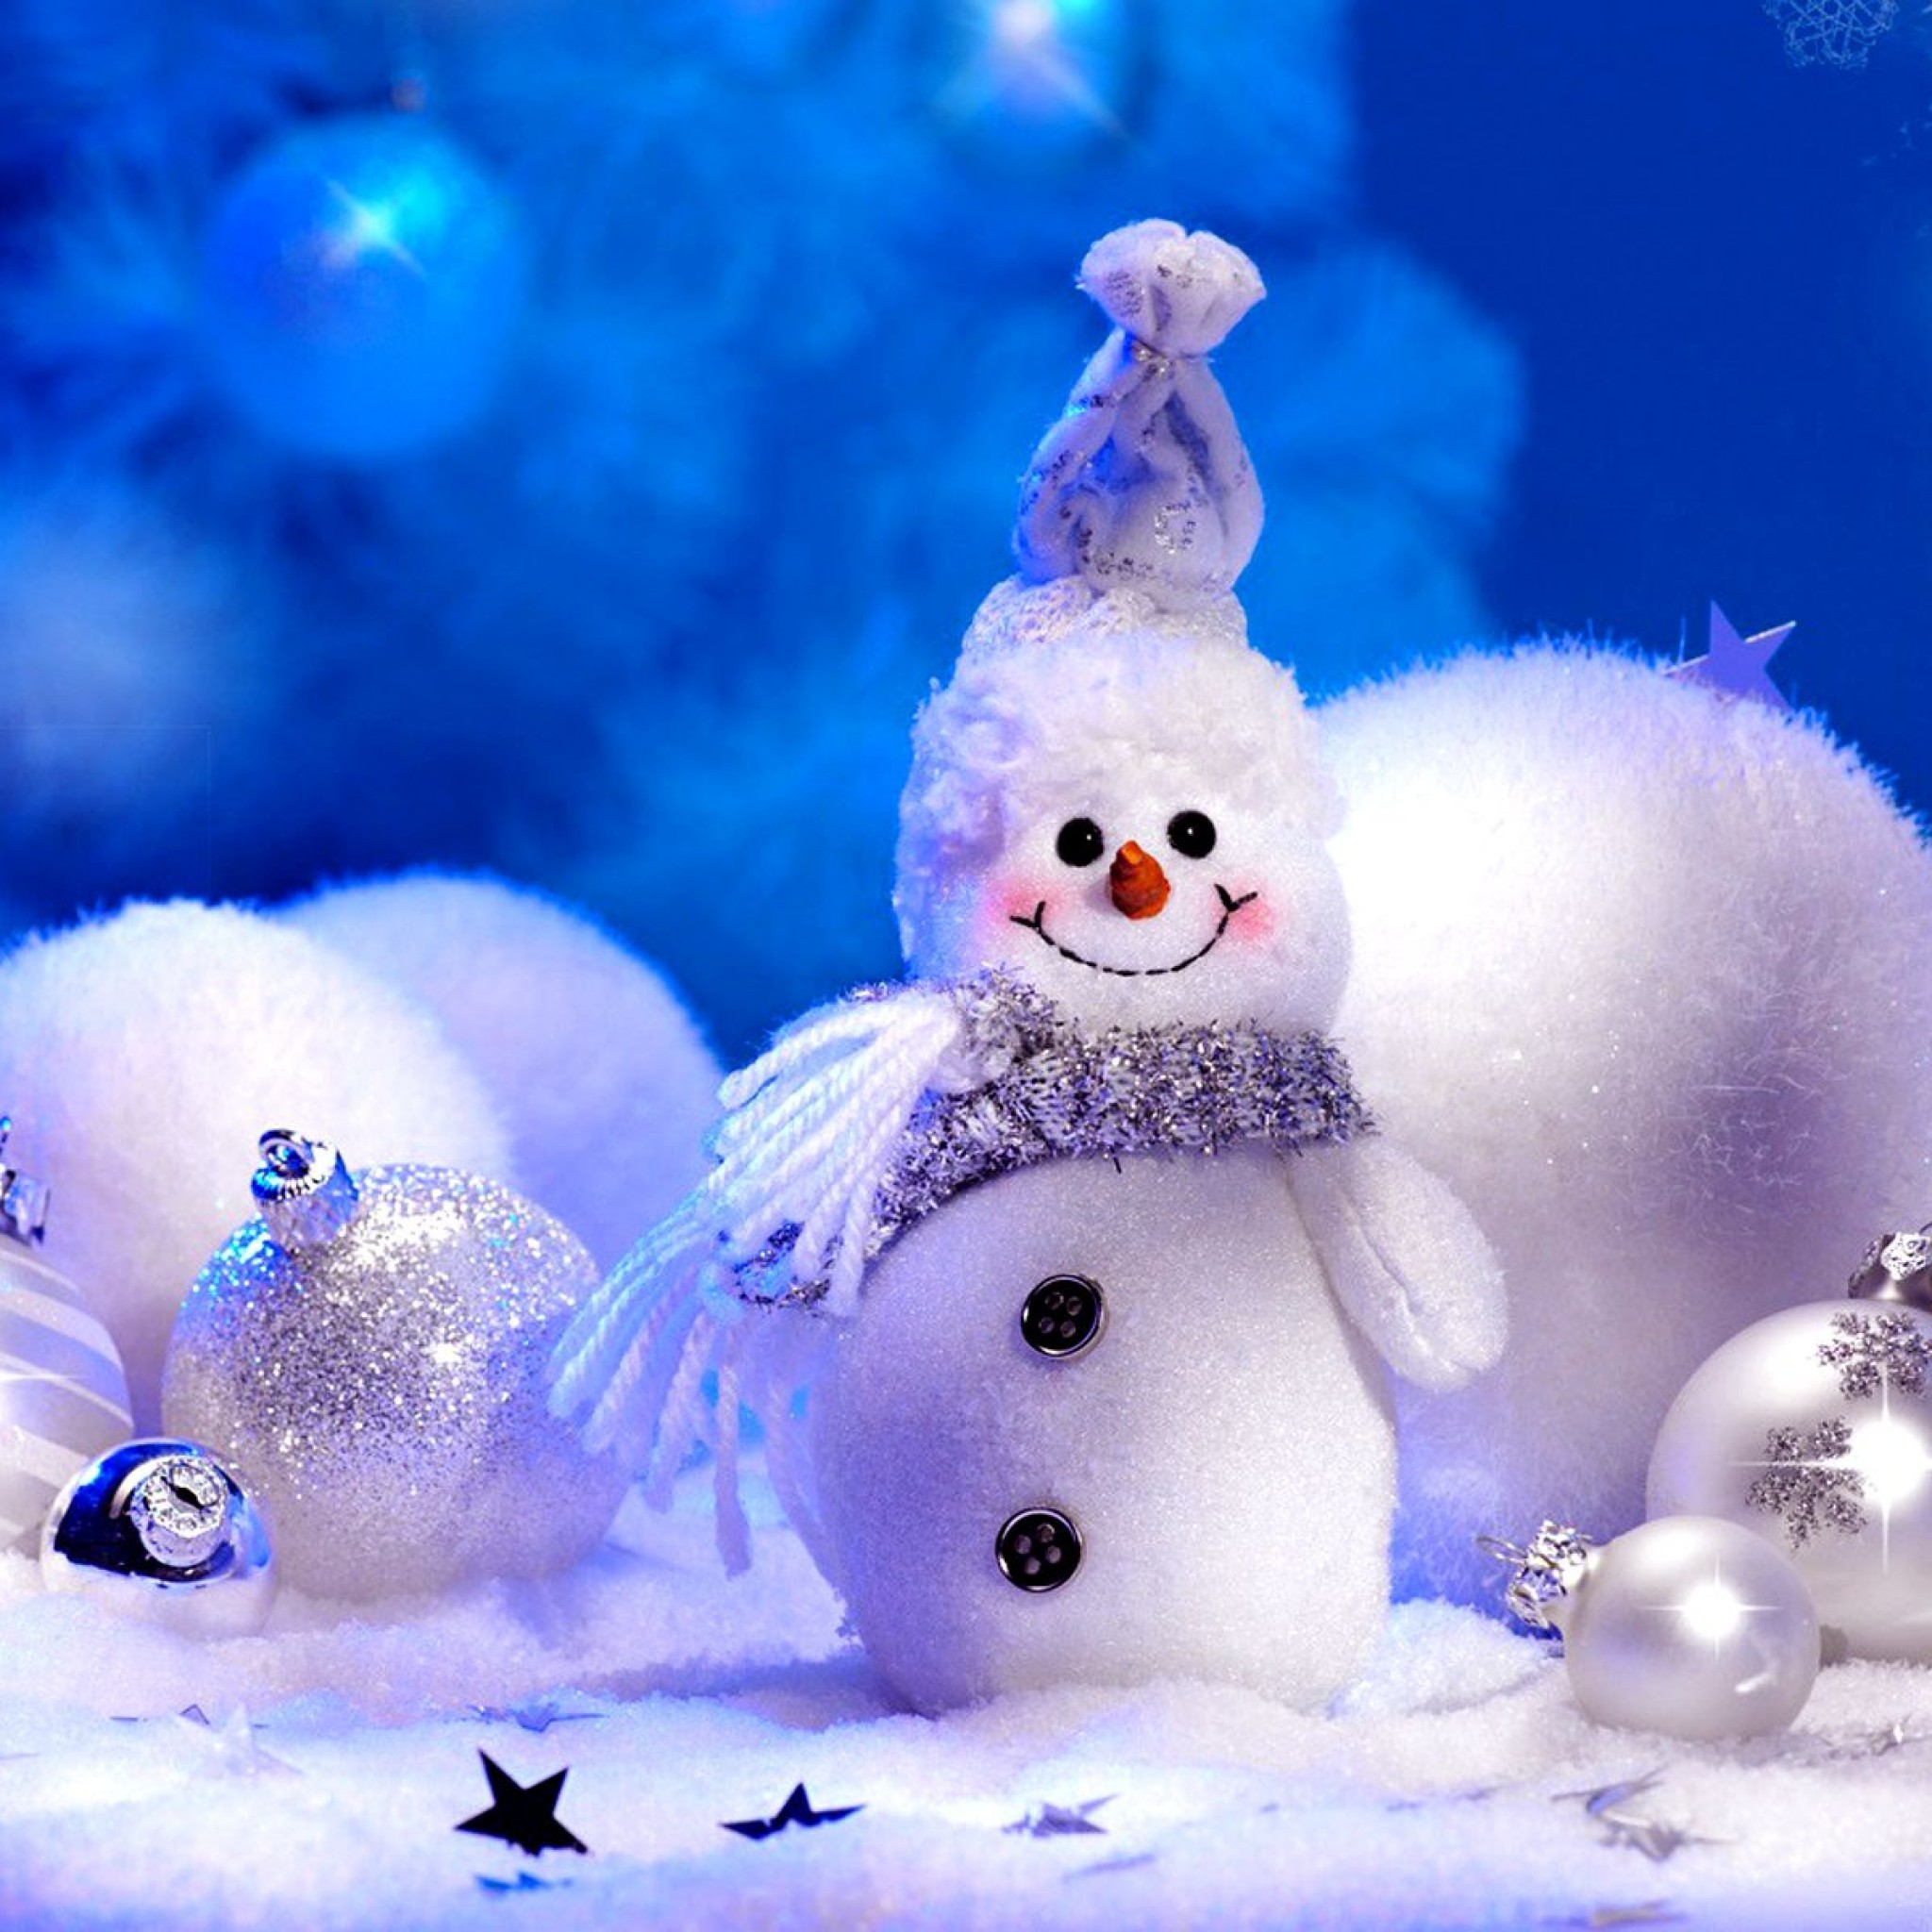 Animated Christmas Wallpaper For IPad (70+ Images